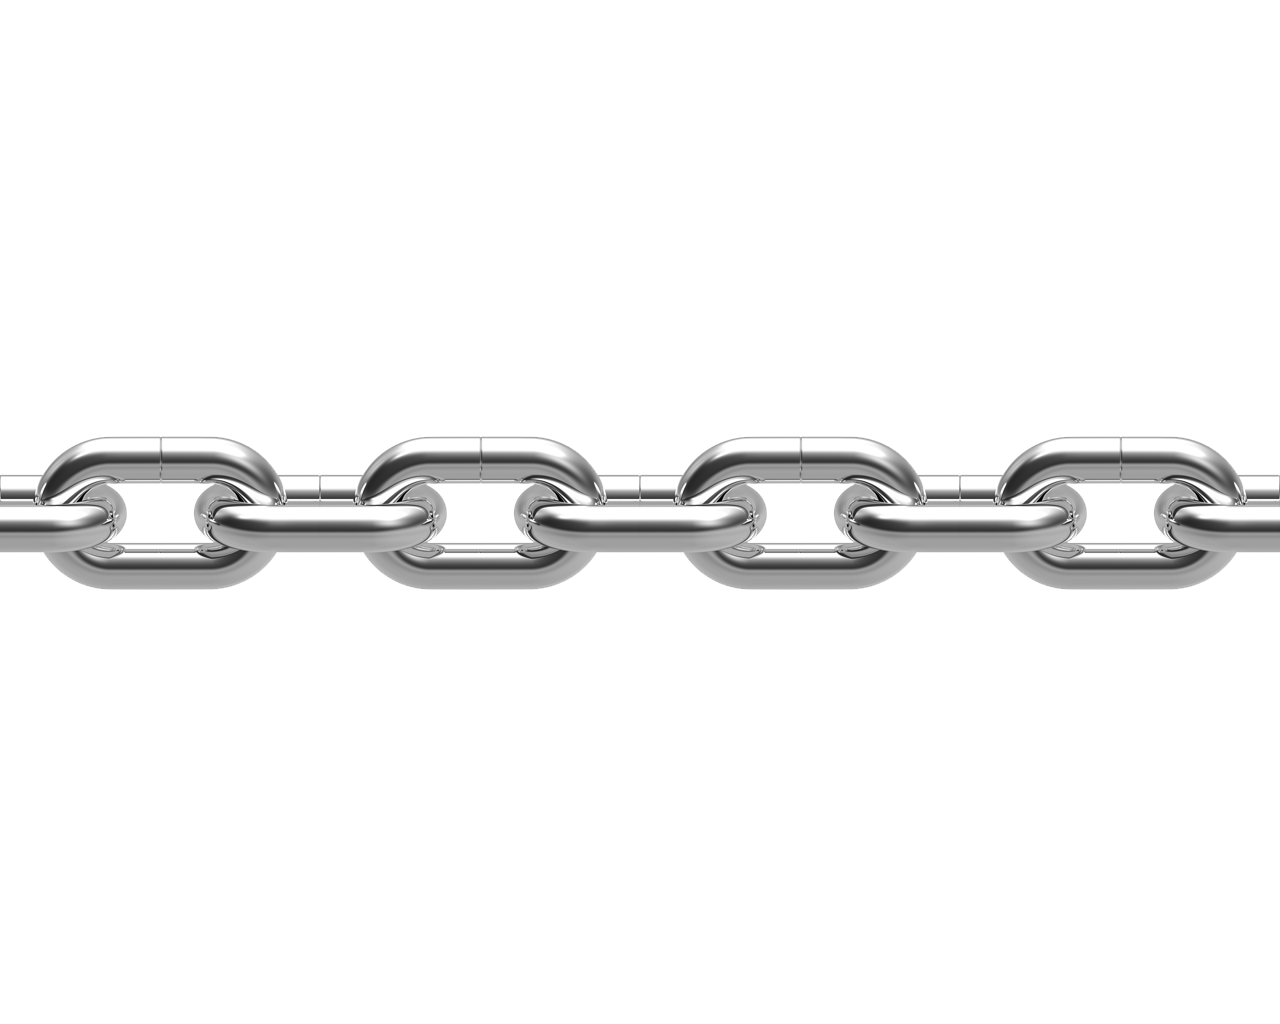 Chain PNG Transparent image #42698